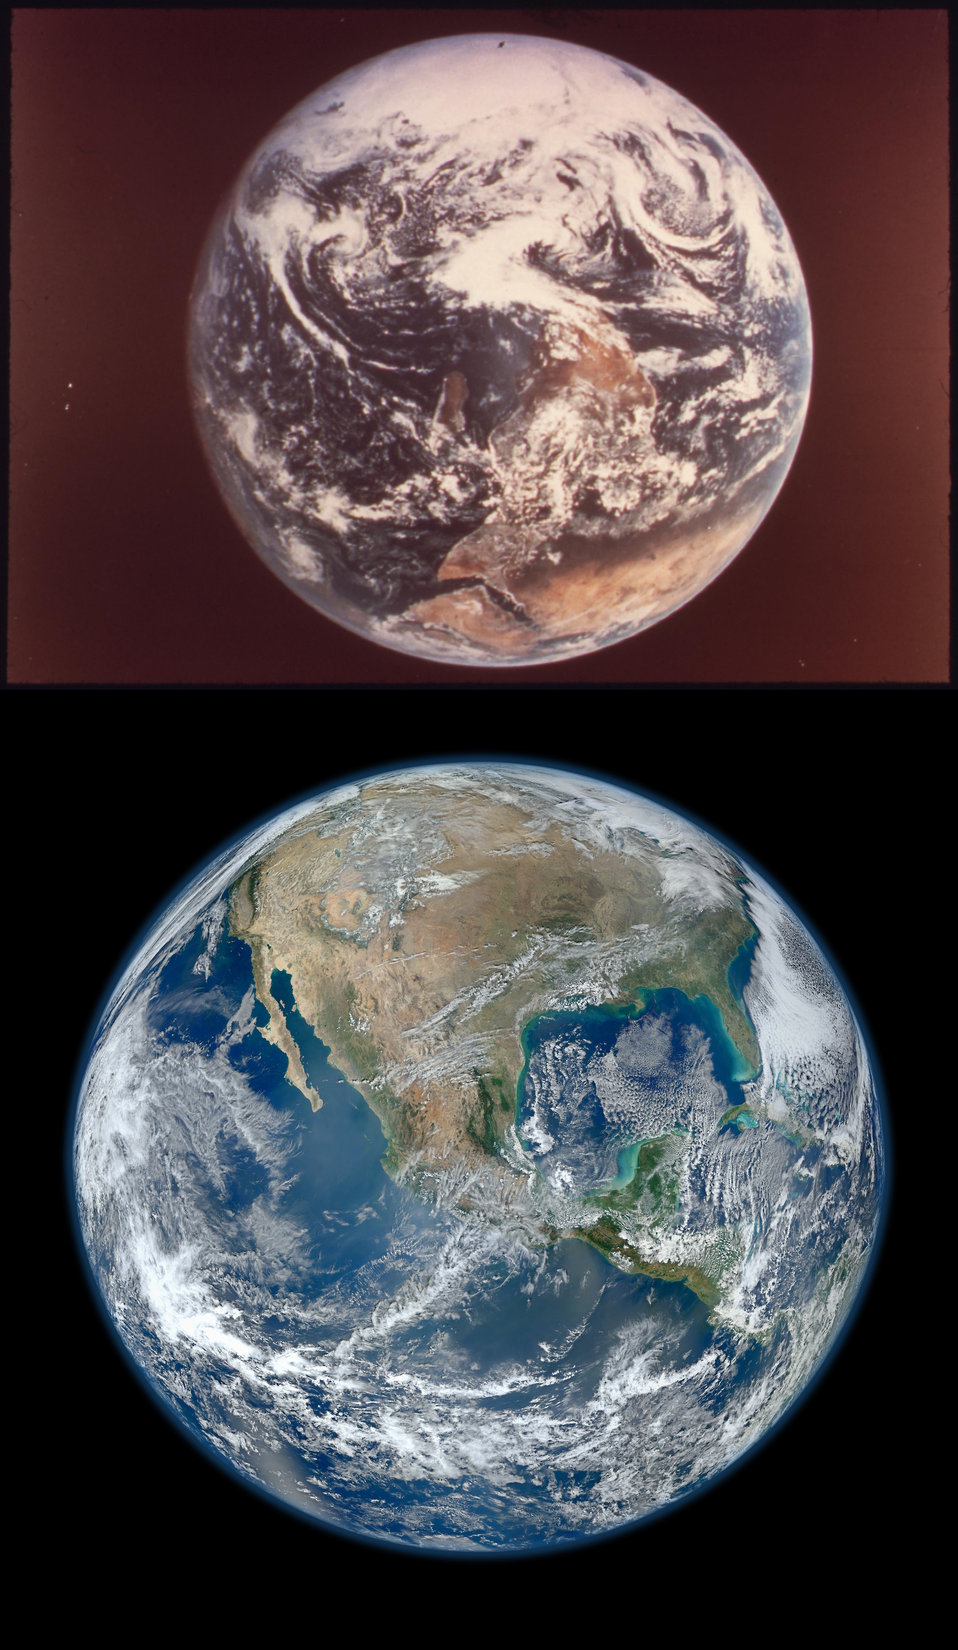 Earth - Then and Now Courtesy of NASA